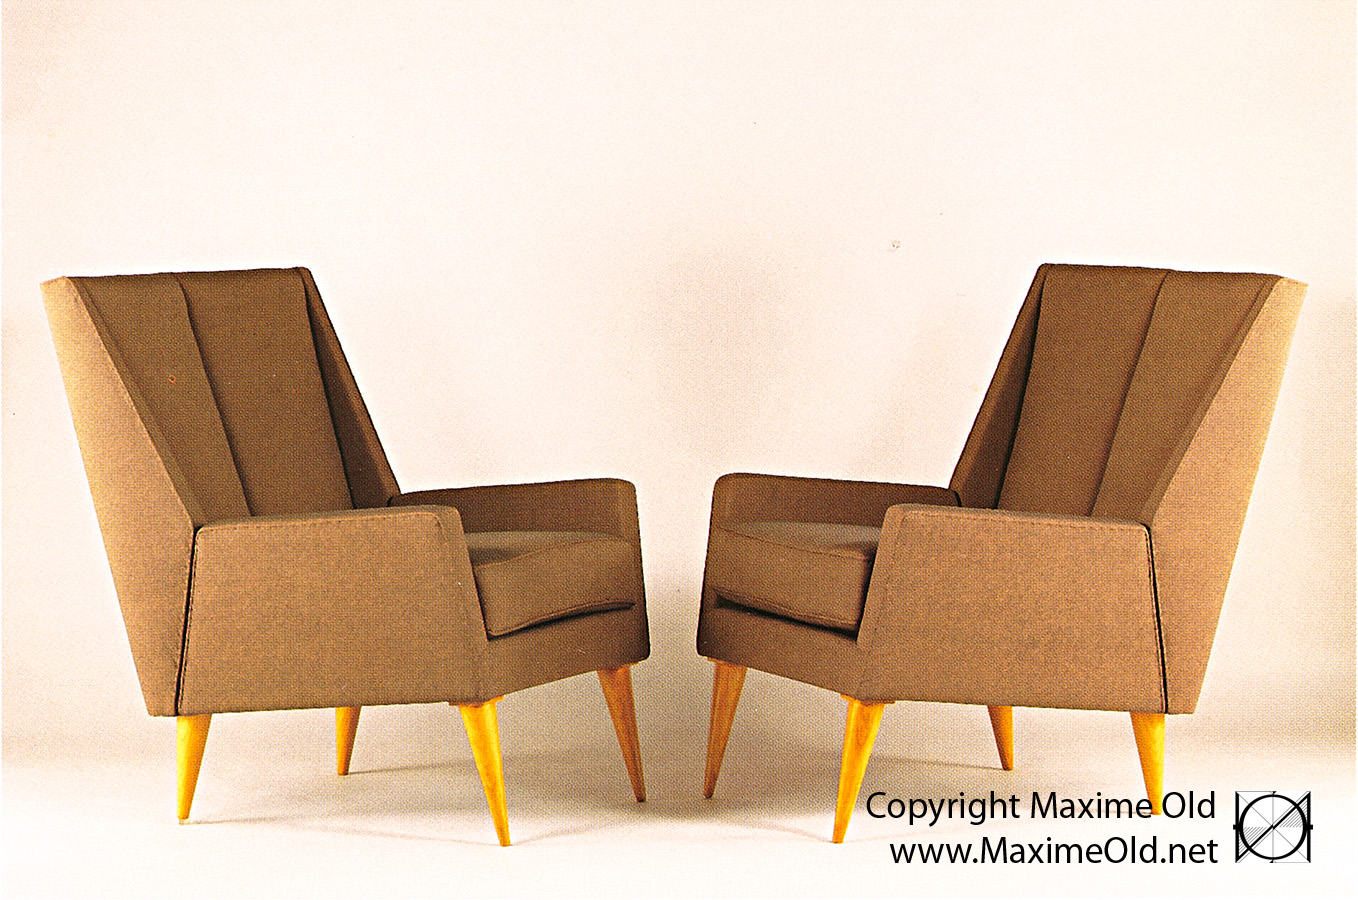 Paquebot France Relaxing Armchair SAD 1959 : Maxime Old - Modern Art Furniture Designer